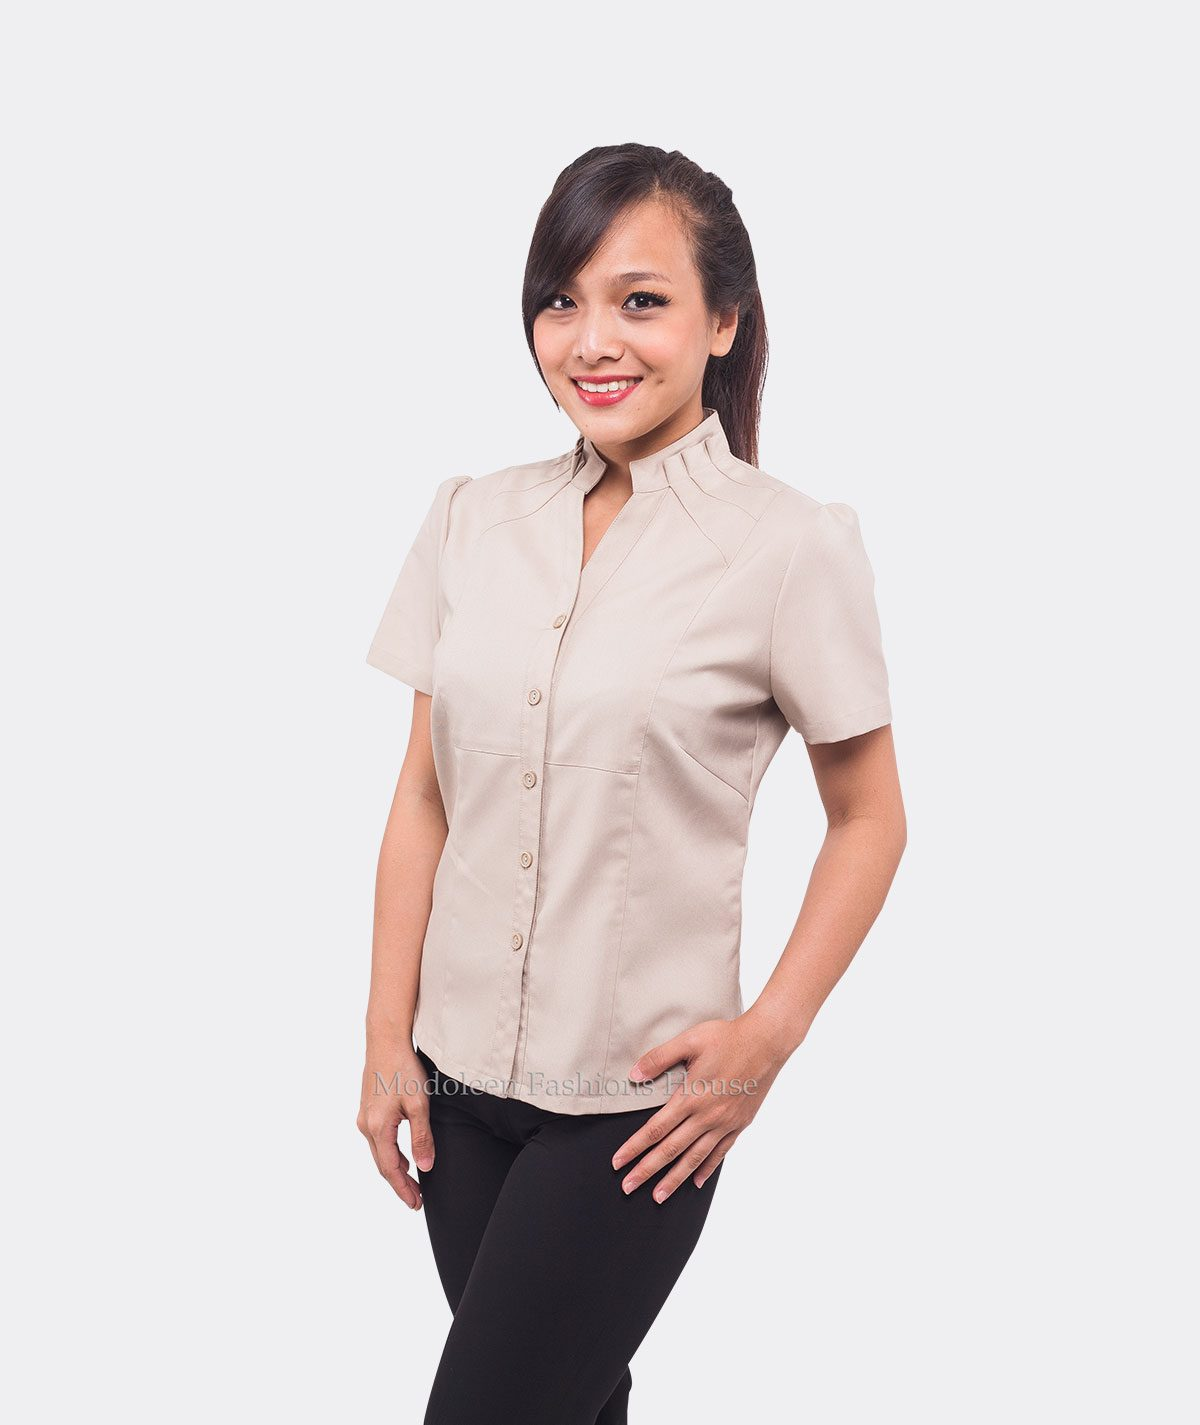 Hotel Services Country Club House Keeping Room Attendant Blouse uniform